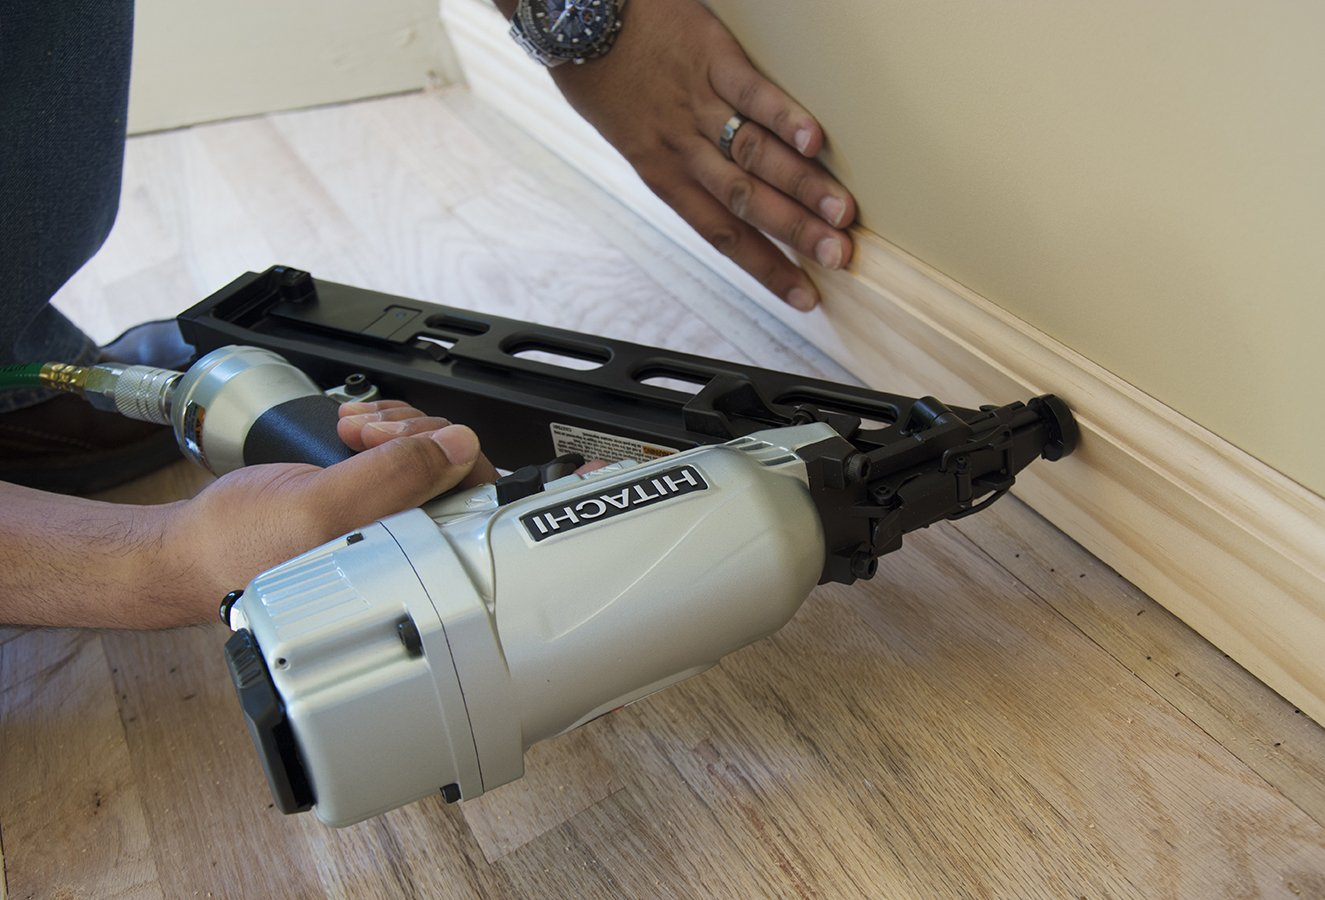 Brad Nailer Vs Finish Nailer Here S The Difference